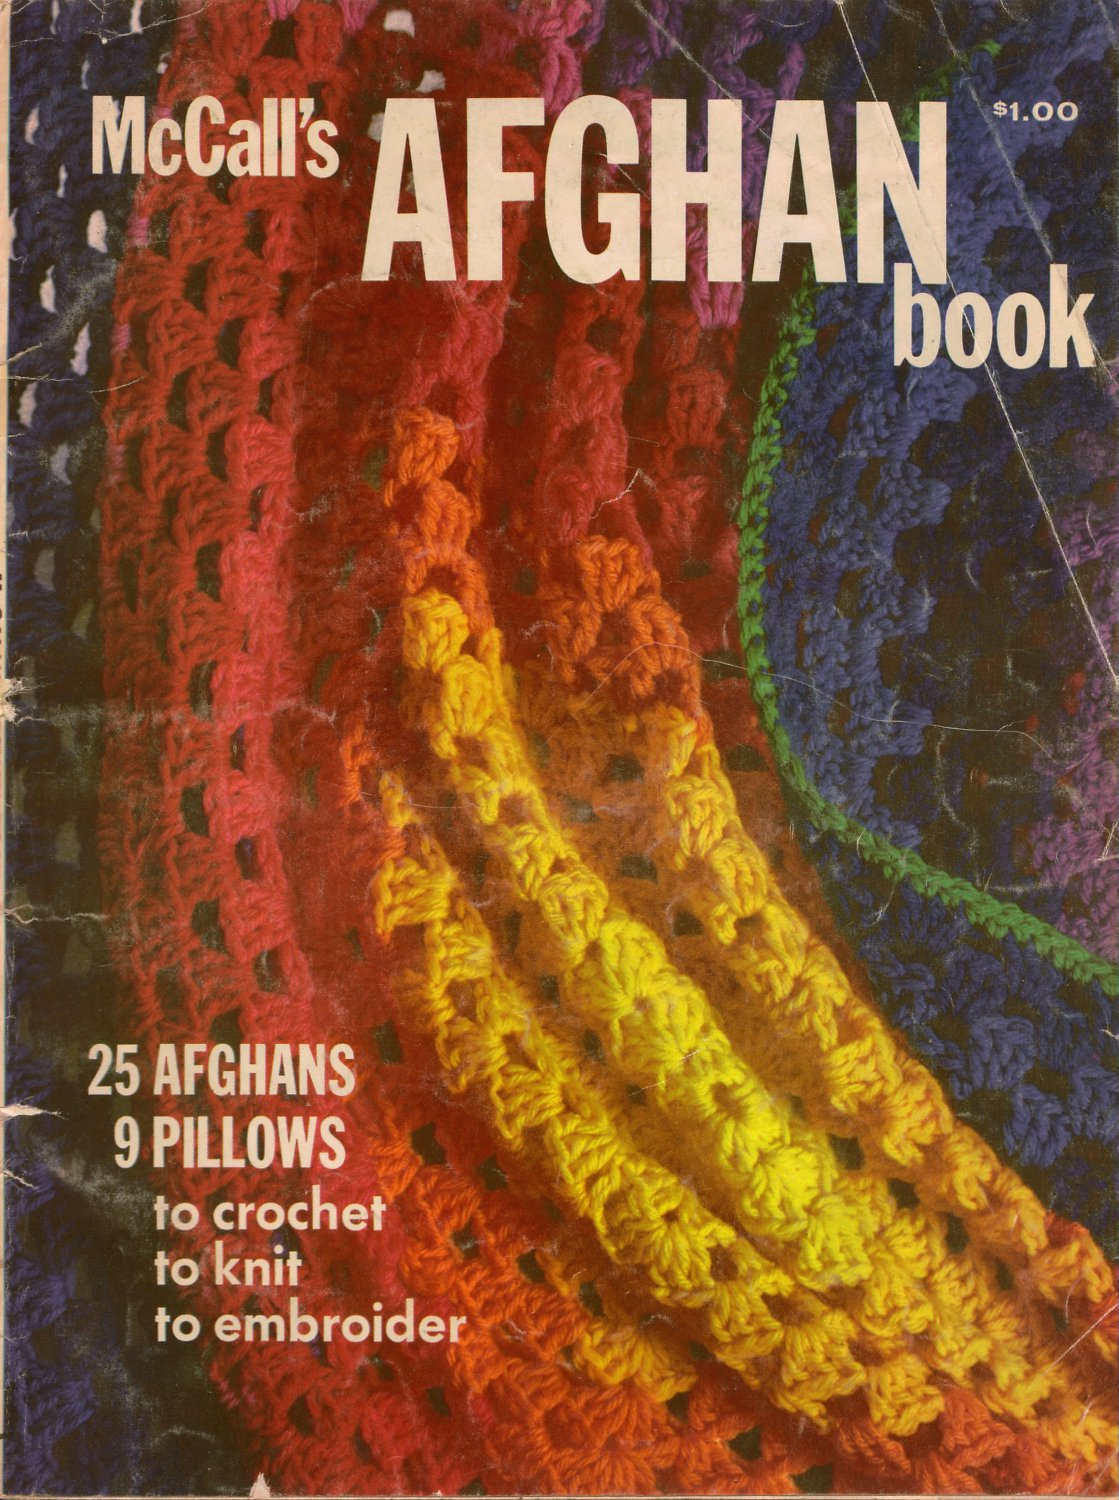 Mccalls Afghan Book Knitting Crochet Patterns Victorian